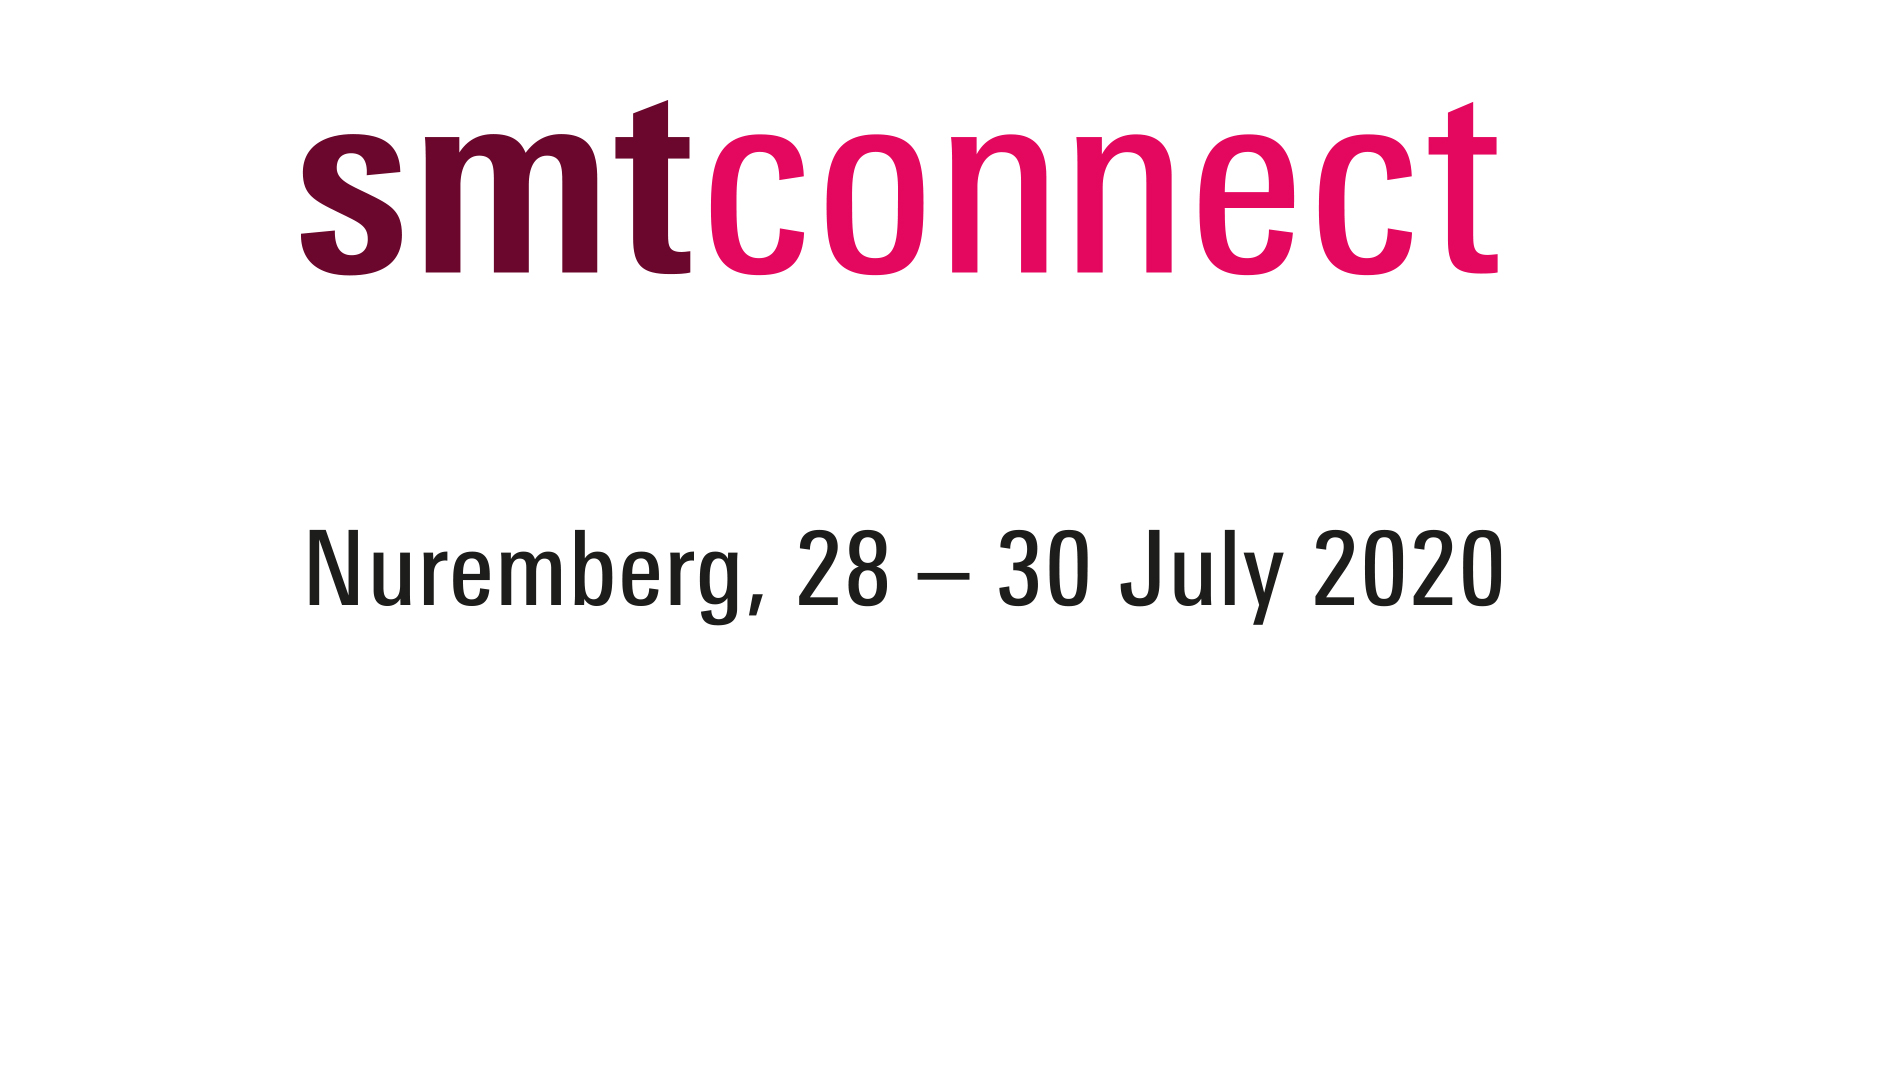 SMTconnect 2020 logo package place and date, coloured